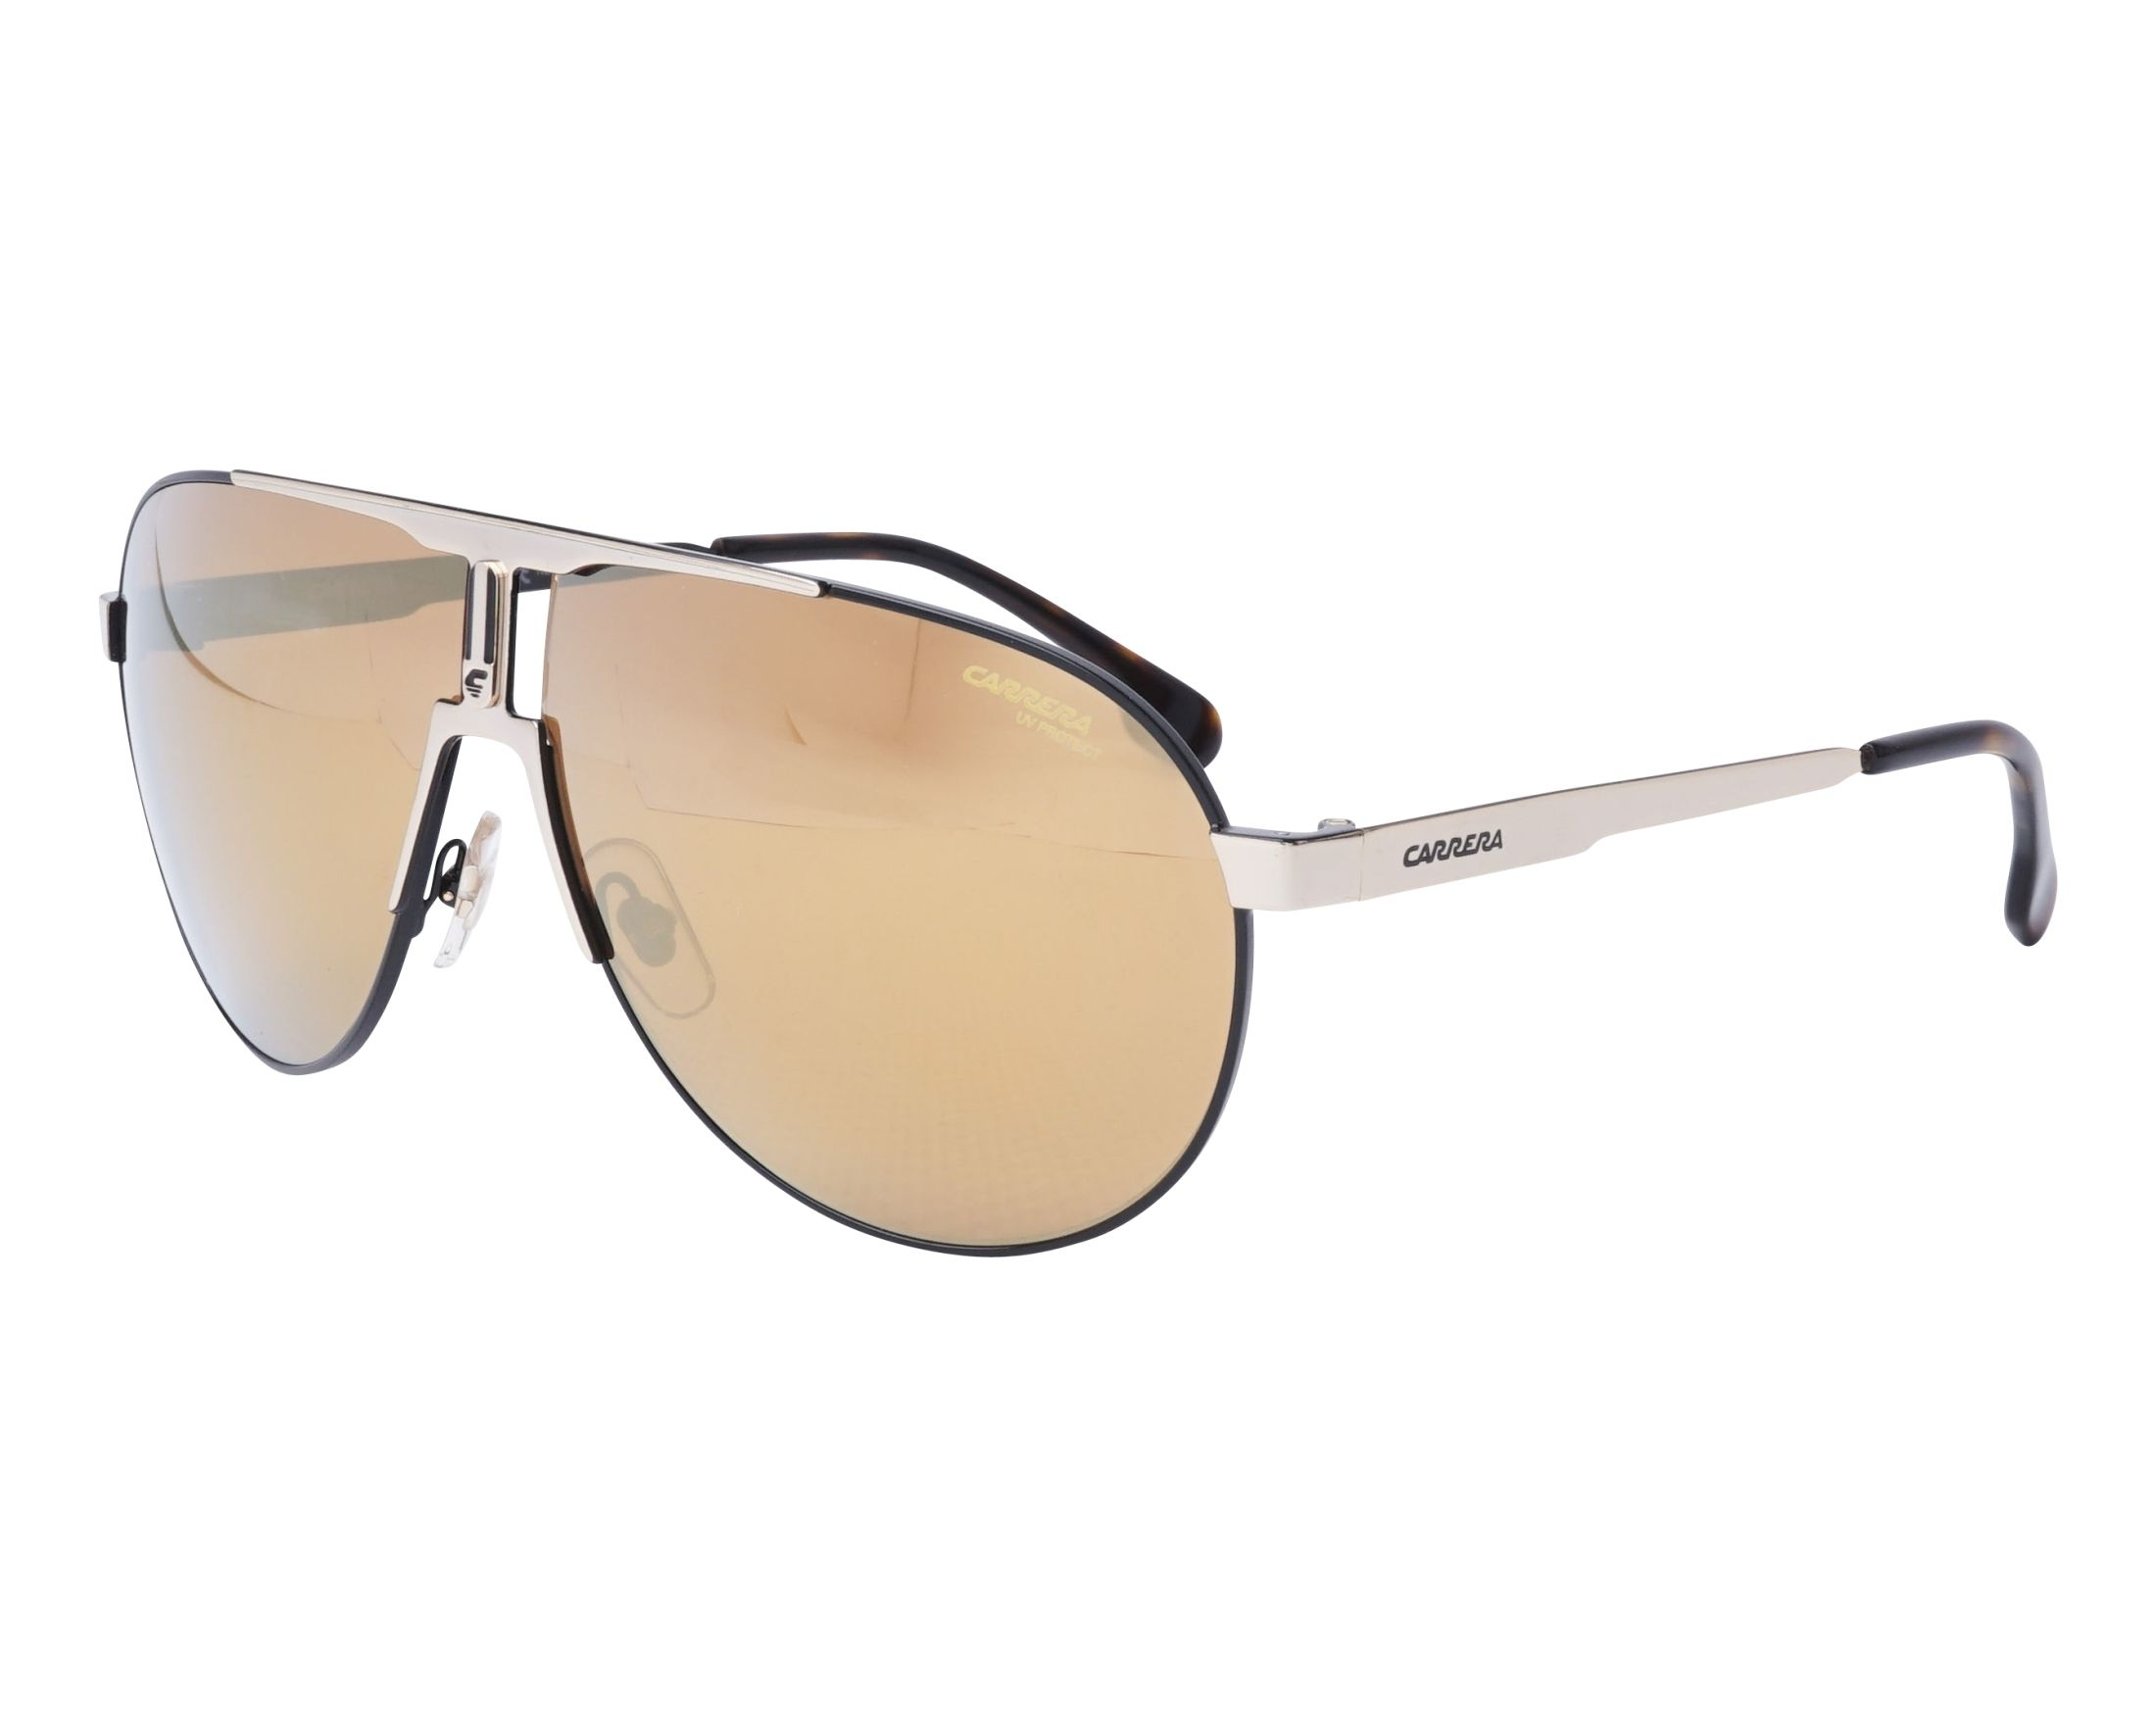 Sunglasses Carrera 1005-S XWYK1 66-9 Gold Black profile view d74118a7213